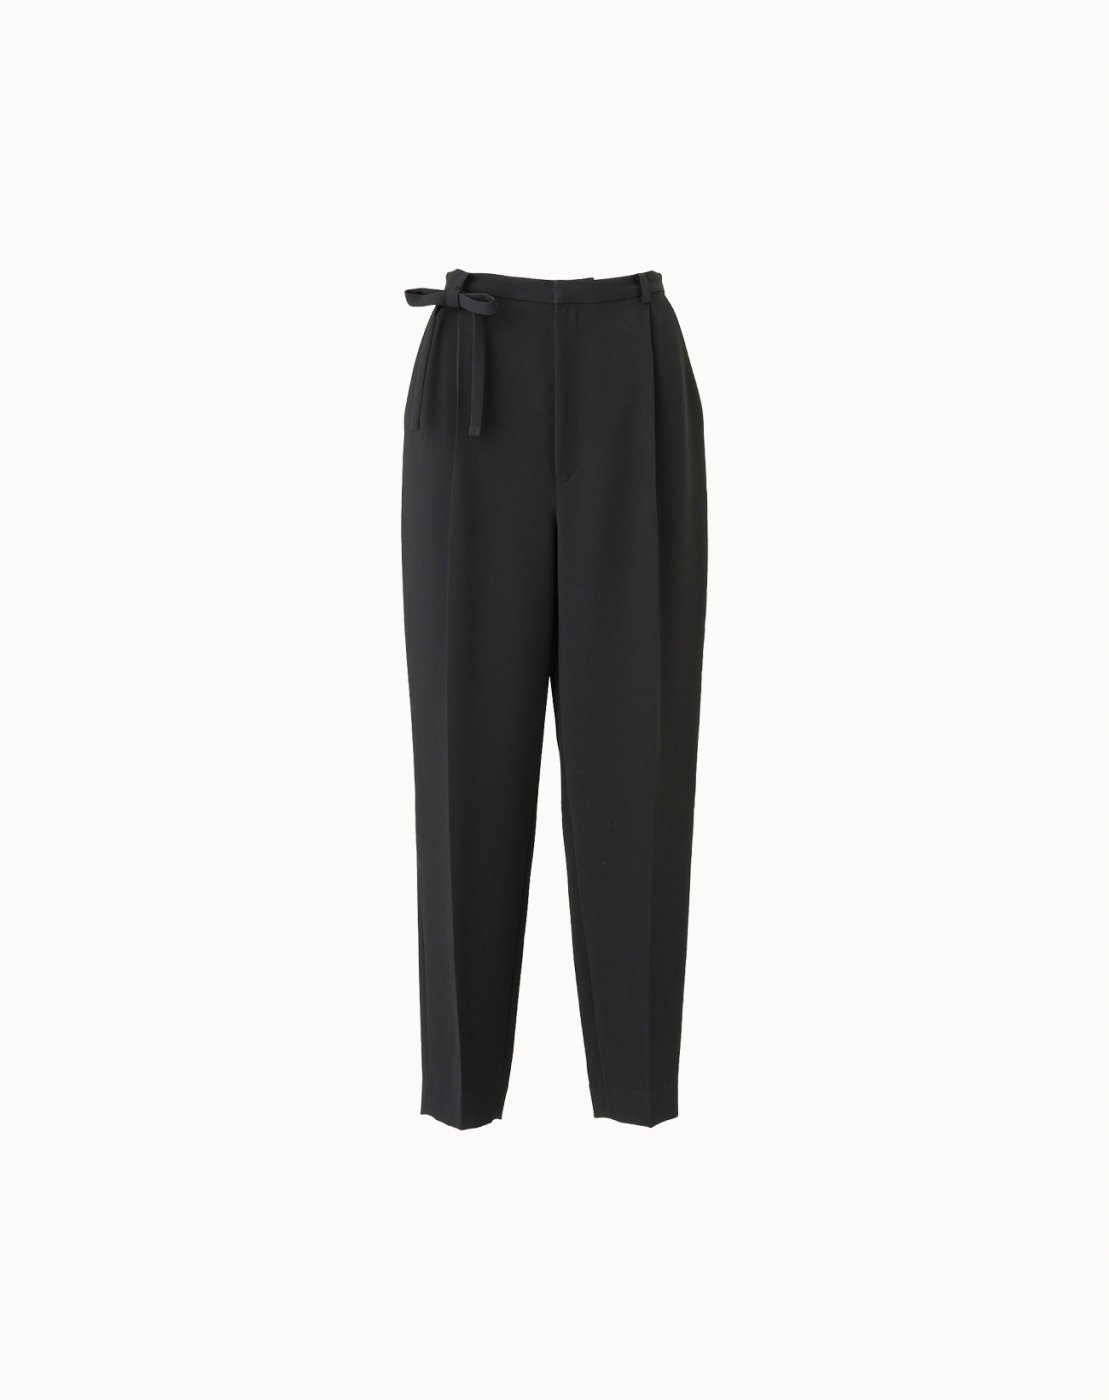 leur logette - Double Georgette Pants - Black